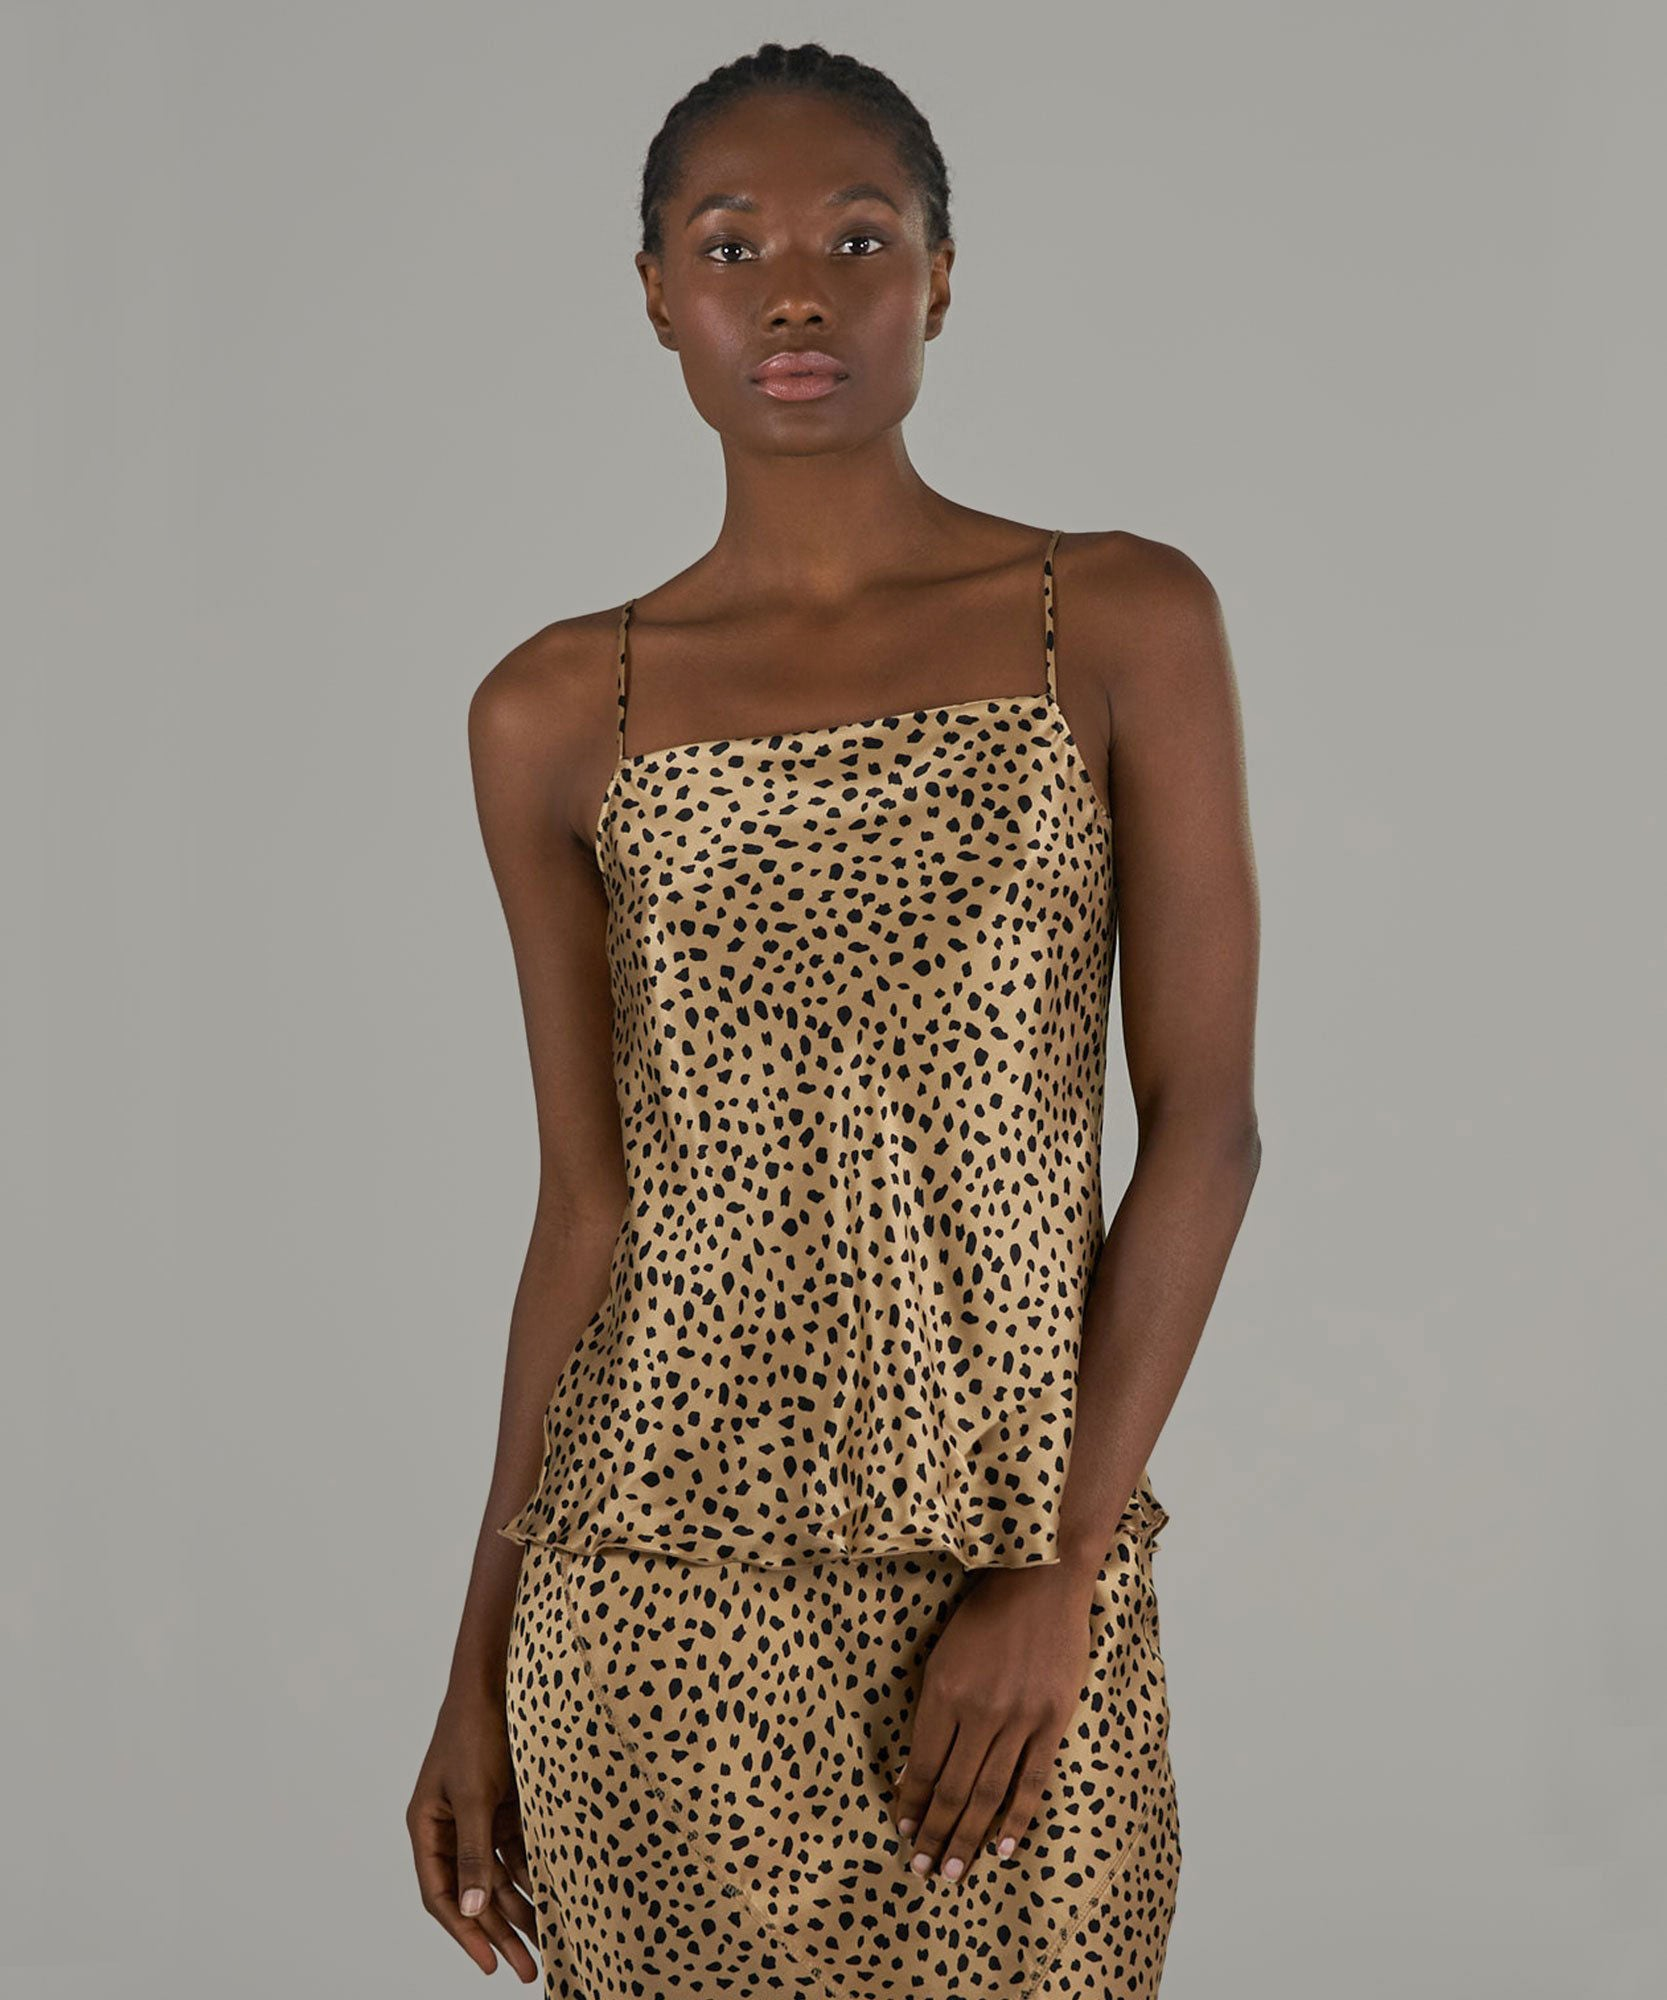 Camel and Black Cheetah Print Silk Charmeuse Cami - Women's Silk Top by ATM Anthony Thomas Melillo